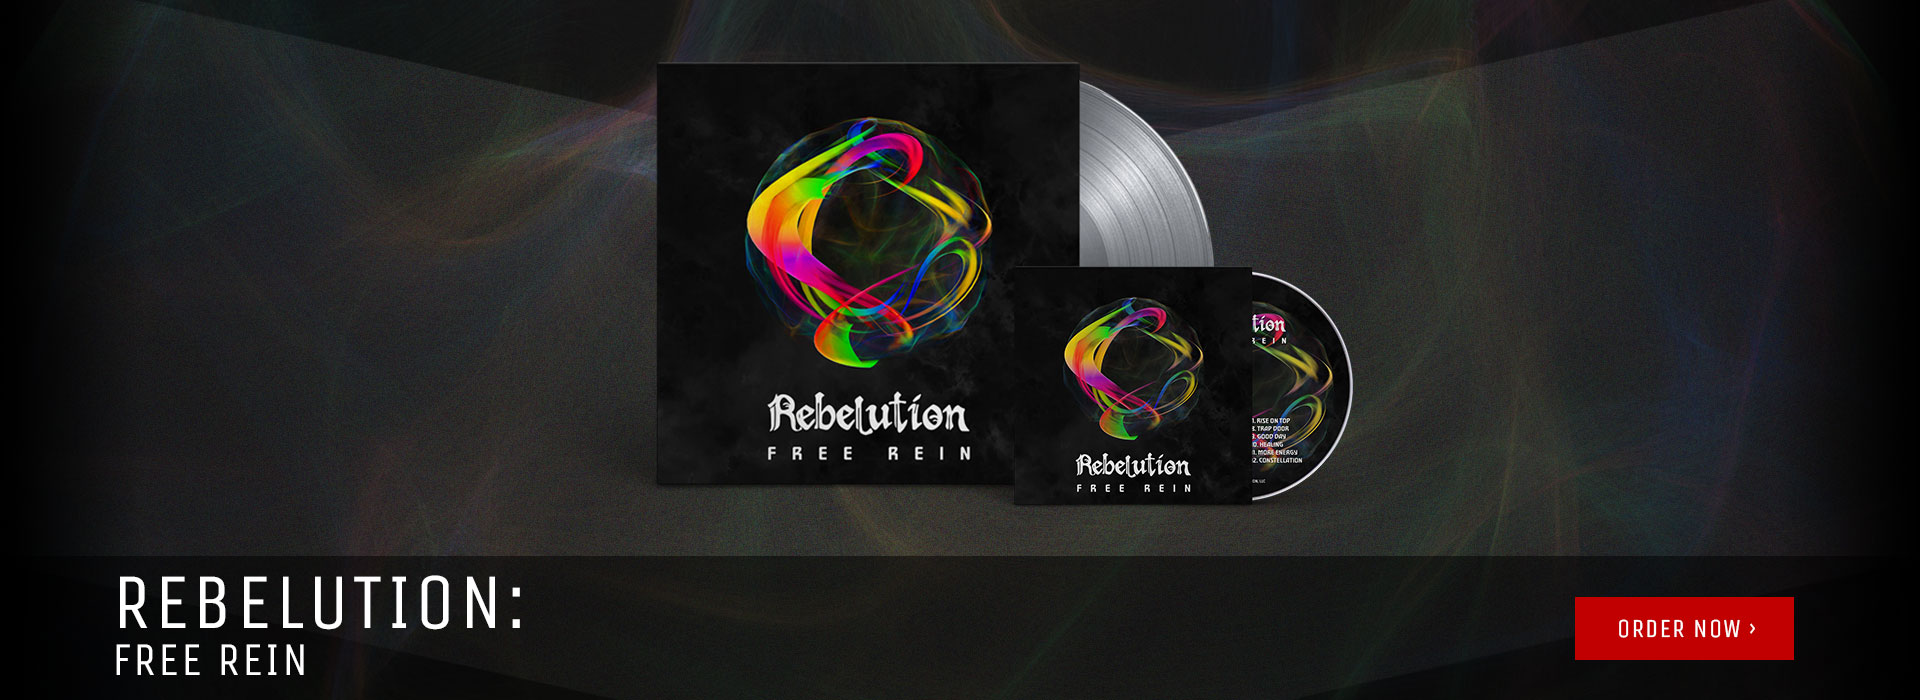 Rebelution - Free Rein: Now Available